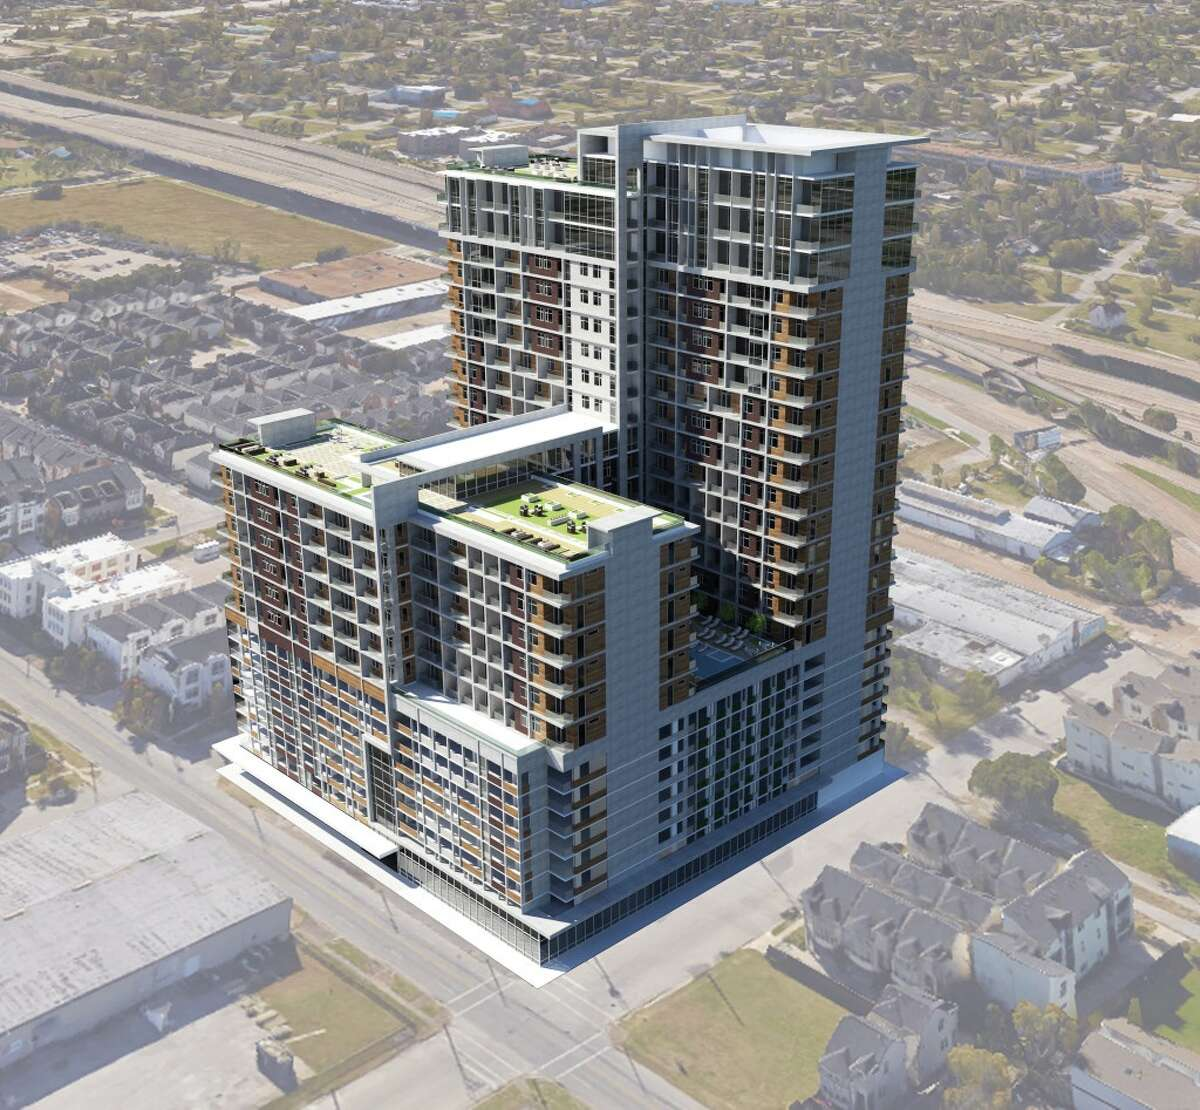 Powers Brown also worked on plans for the 24-story Ivy Lofts east of downtown Houston.